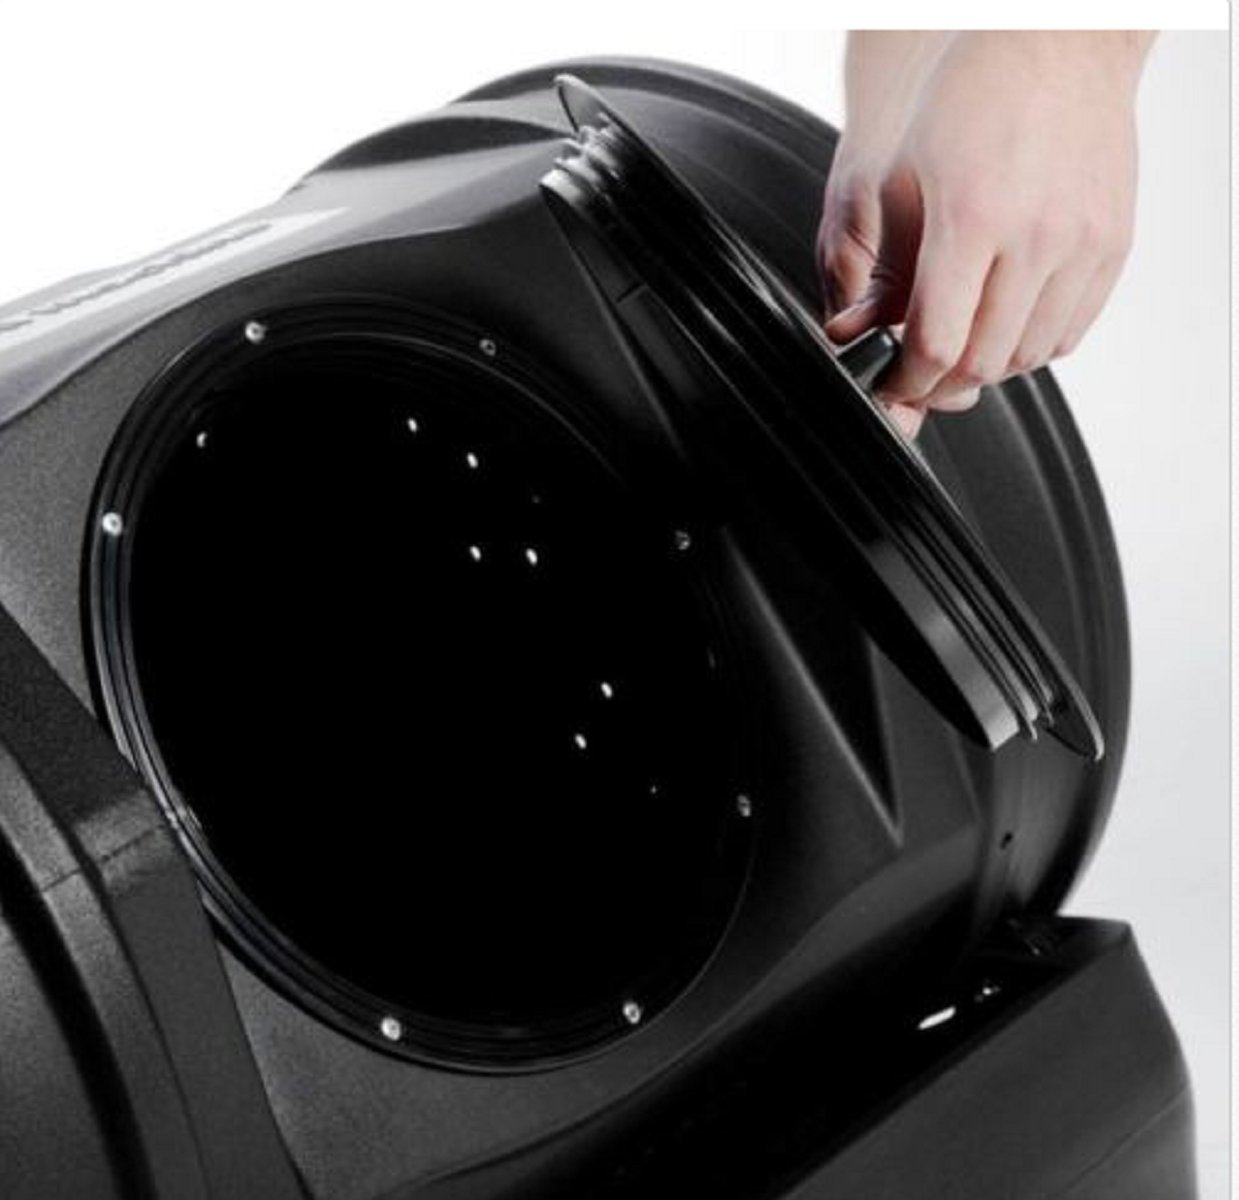 USA Premium Store Outdoor Compost Tumbler Composter Recycled Plastic Barrel Home Garden Waste Bin